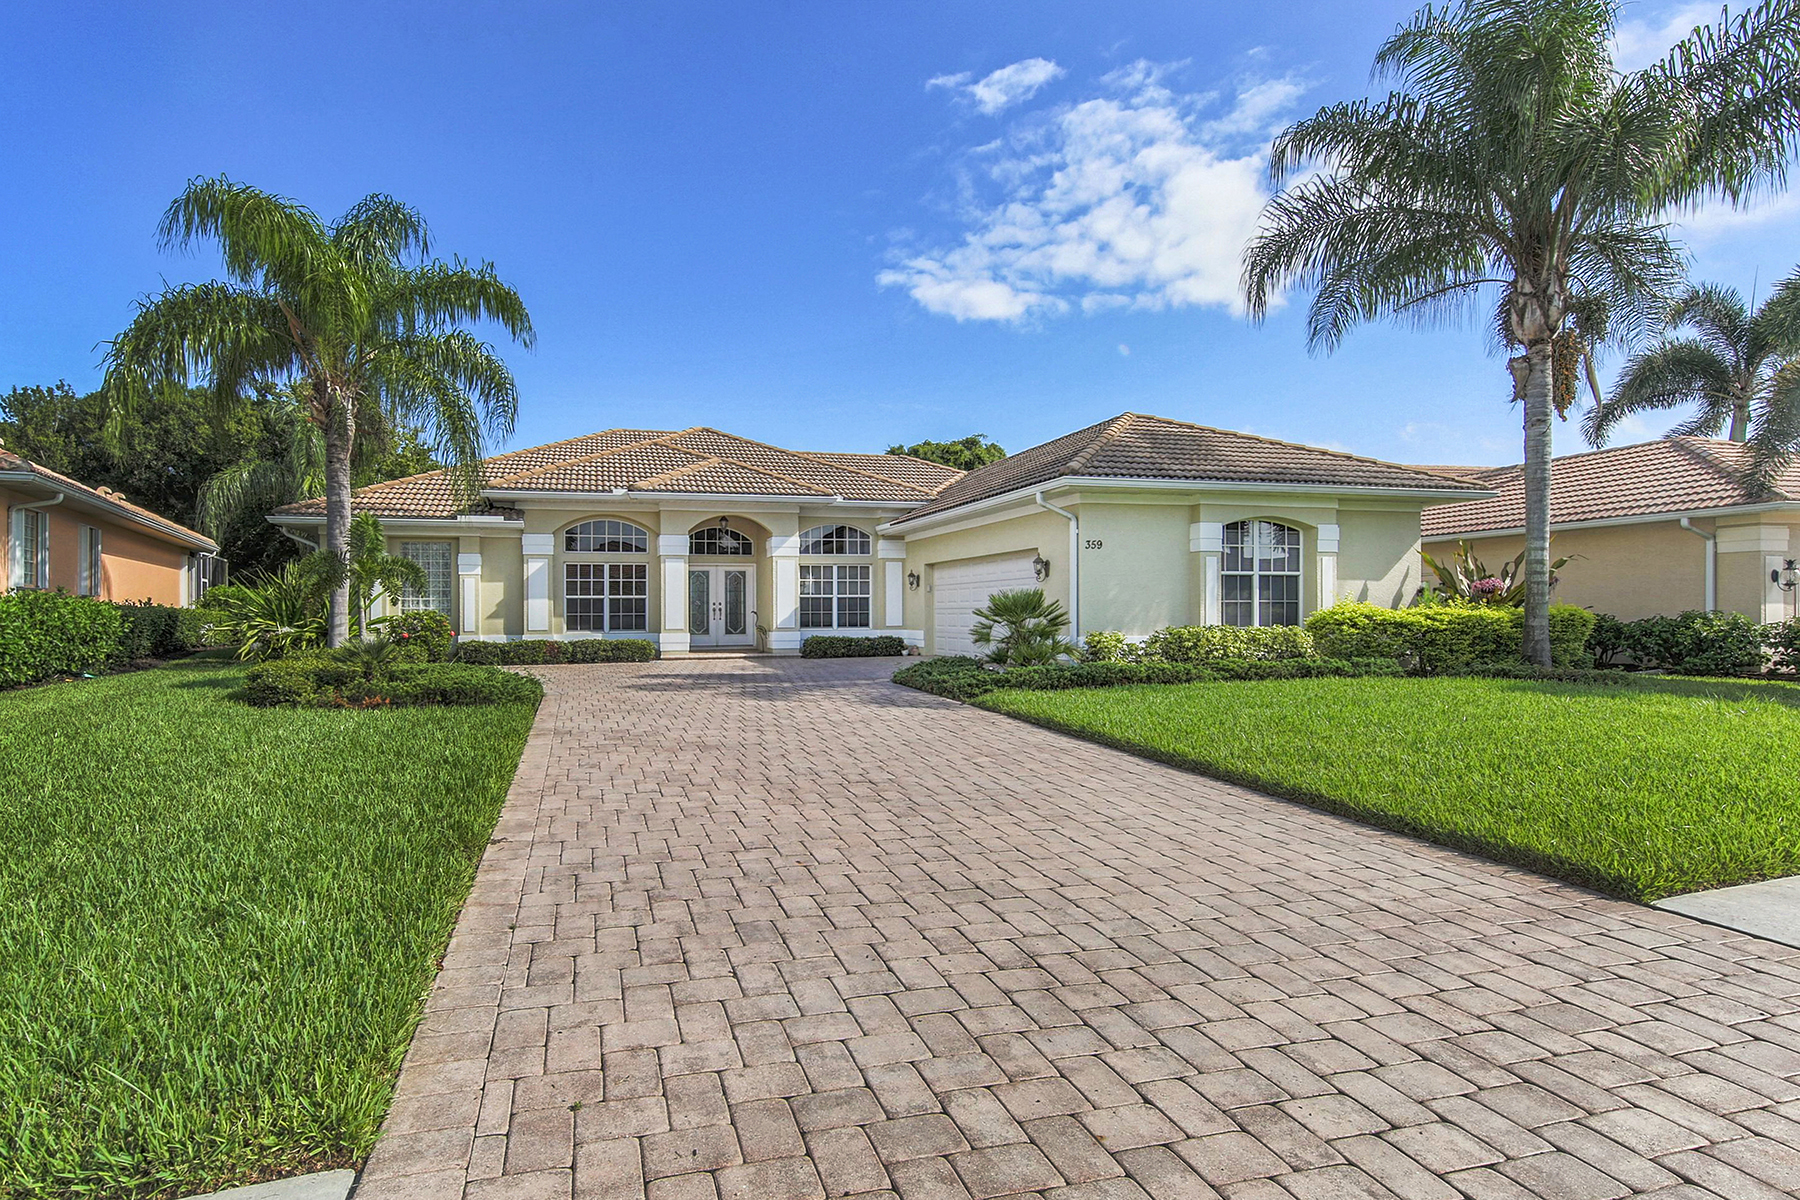 Single Family Home for Sale at SAWGRASS 359 Turtleback Venice, Florida, 34292 United States